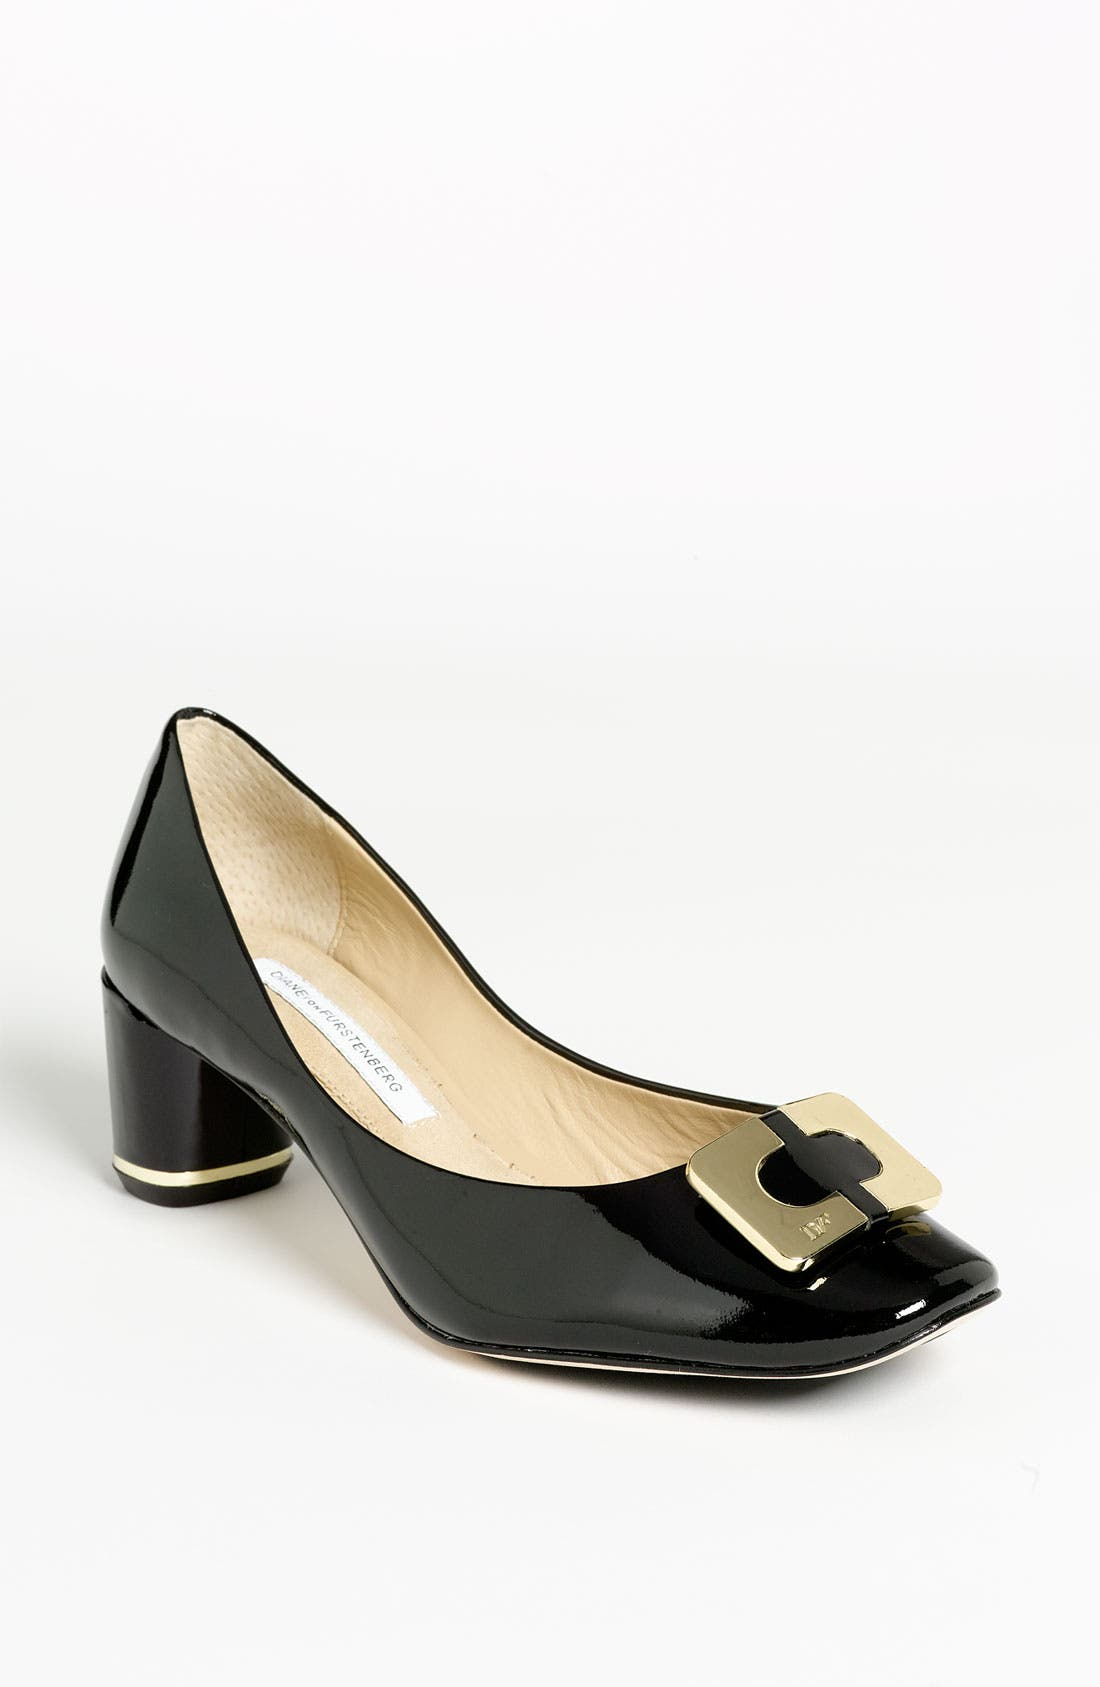 Alternate Image 1 Selected - Diane von Furstenberg 'Bonnie' Pump